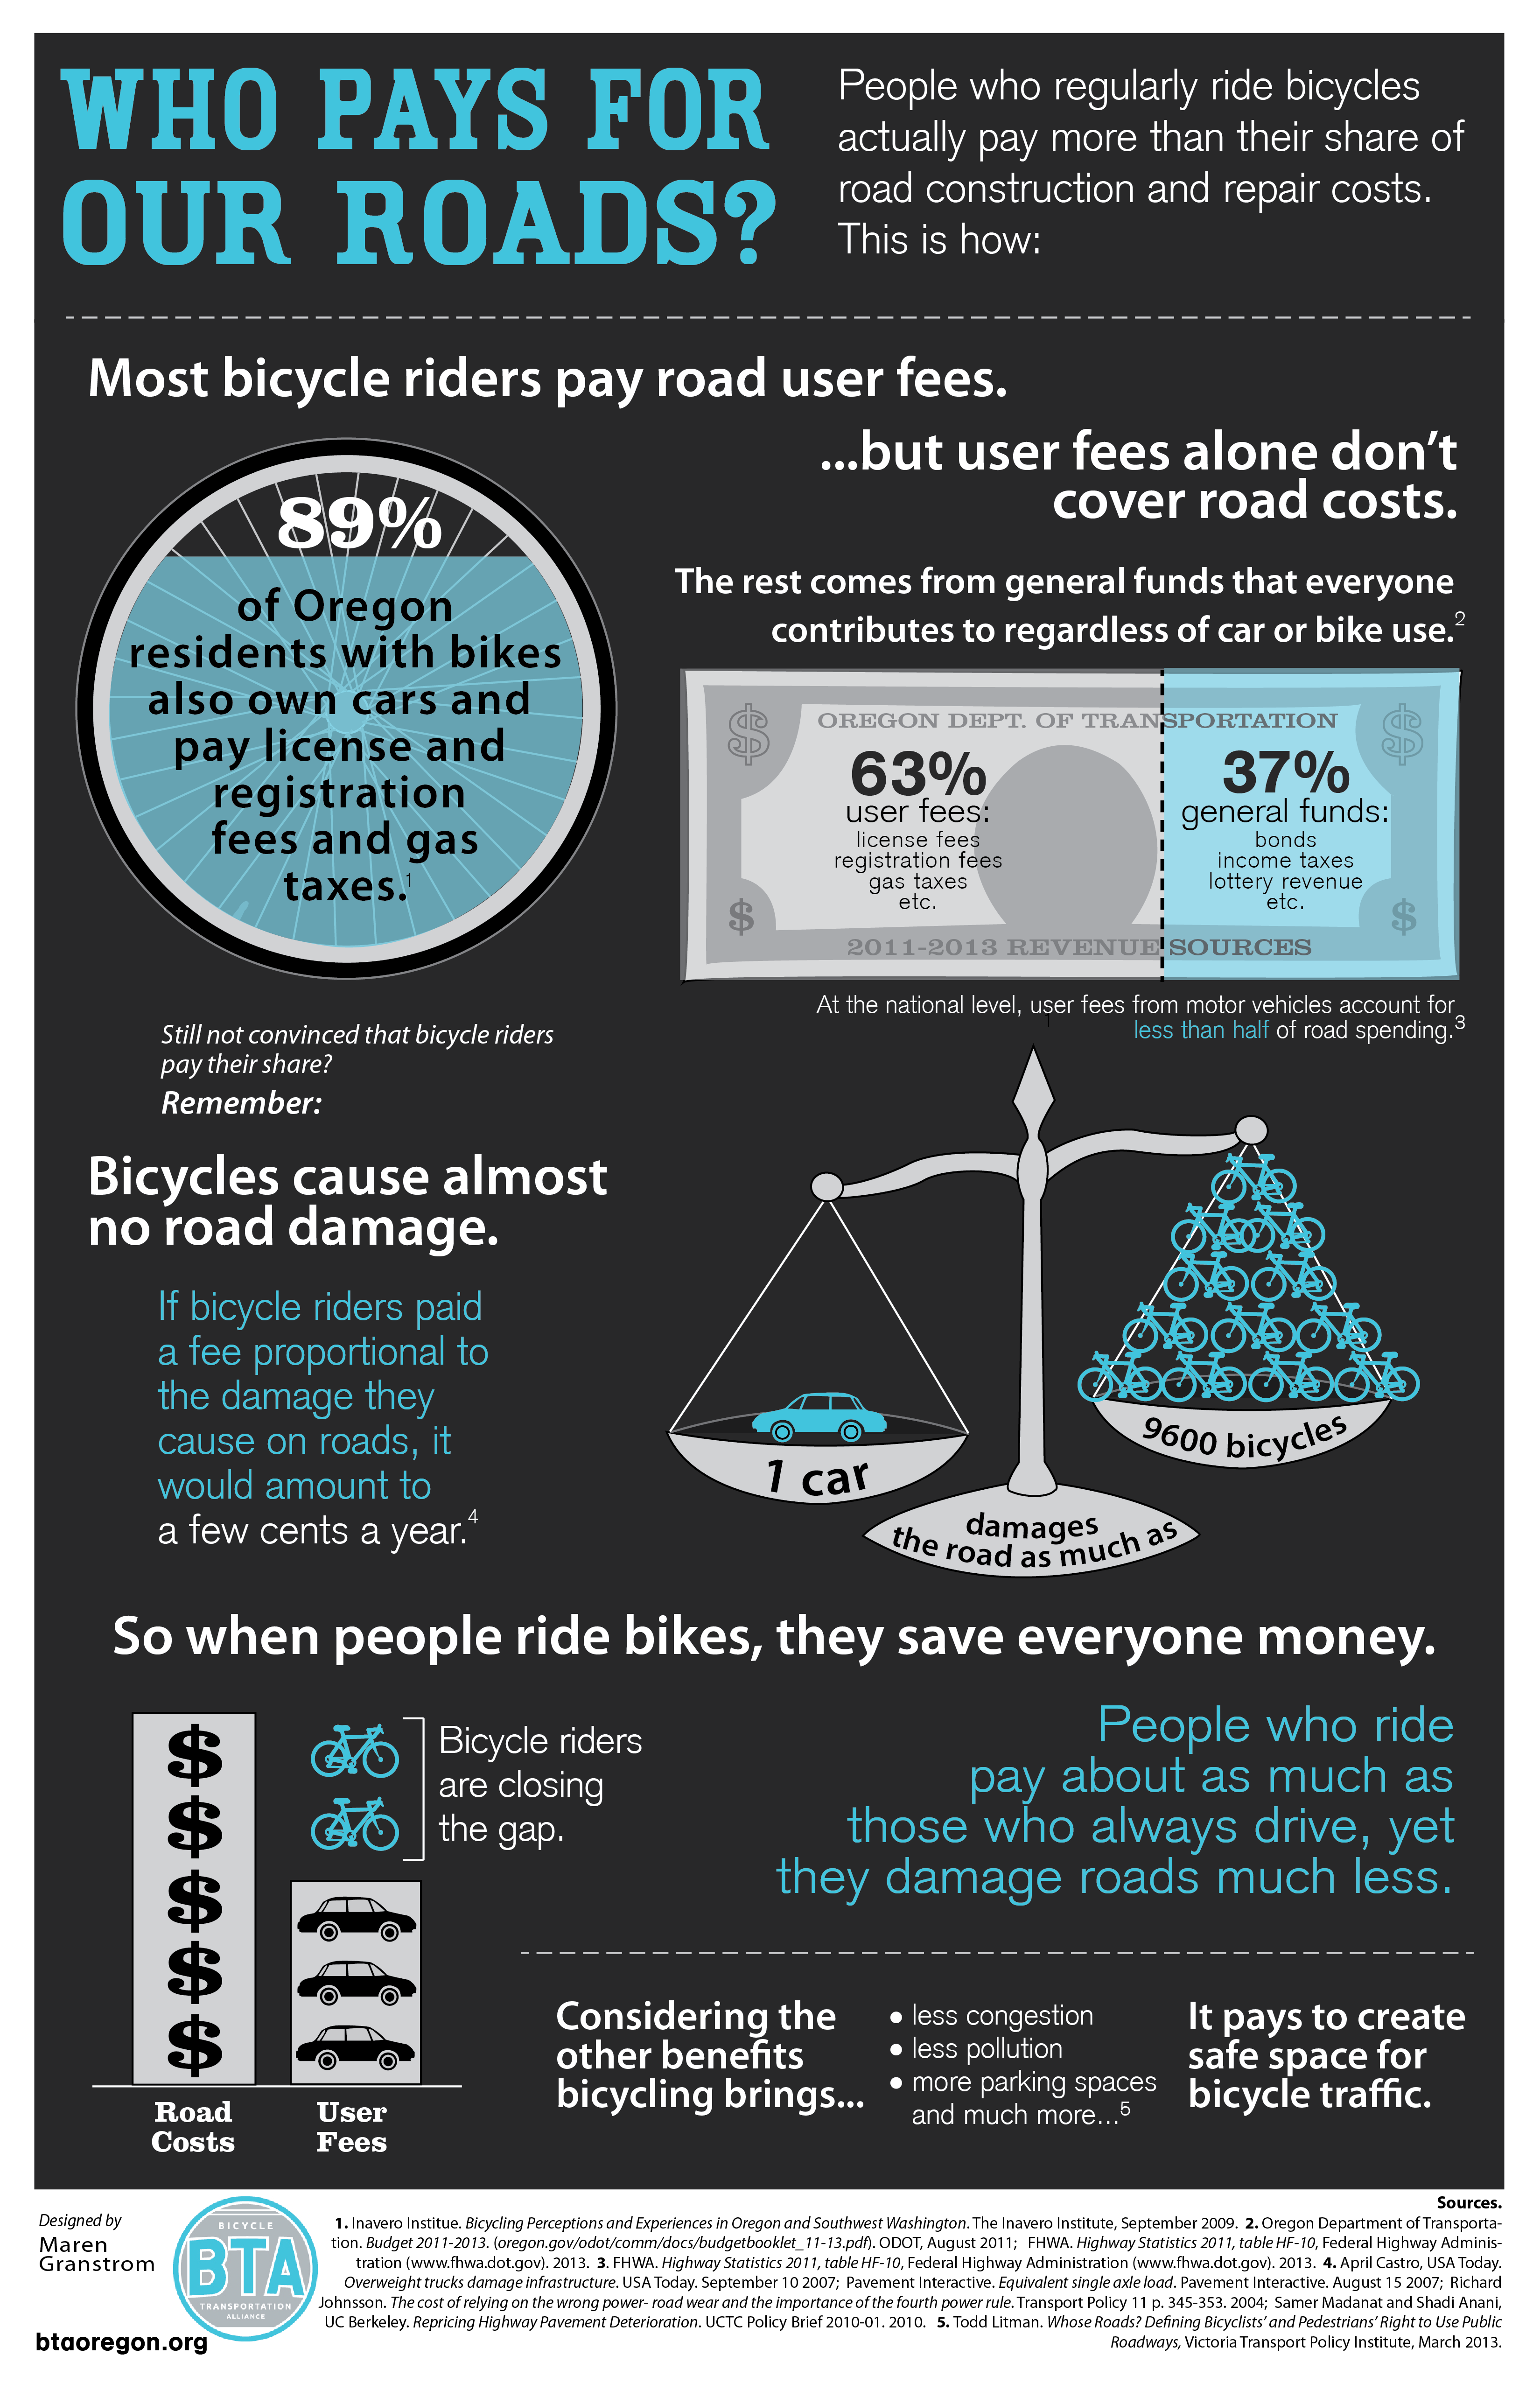 Road_Cost_Infographic_PNG